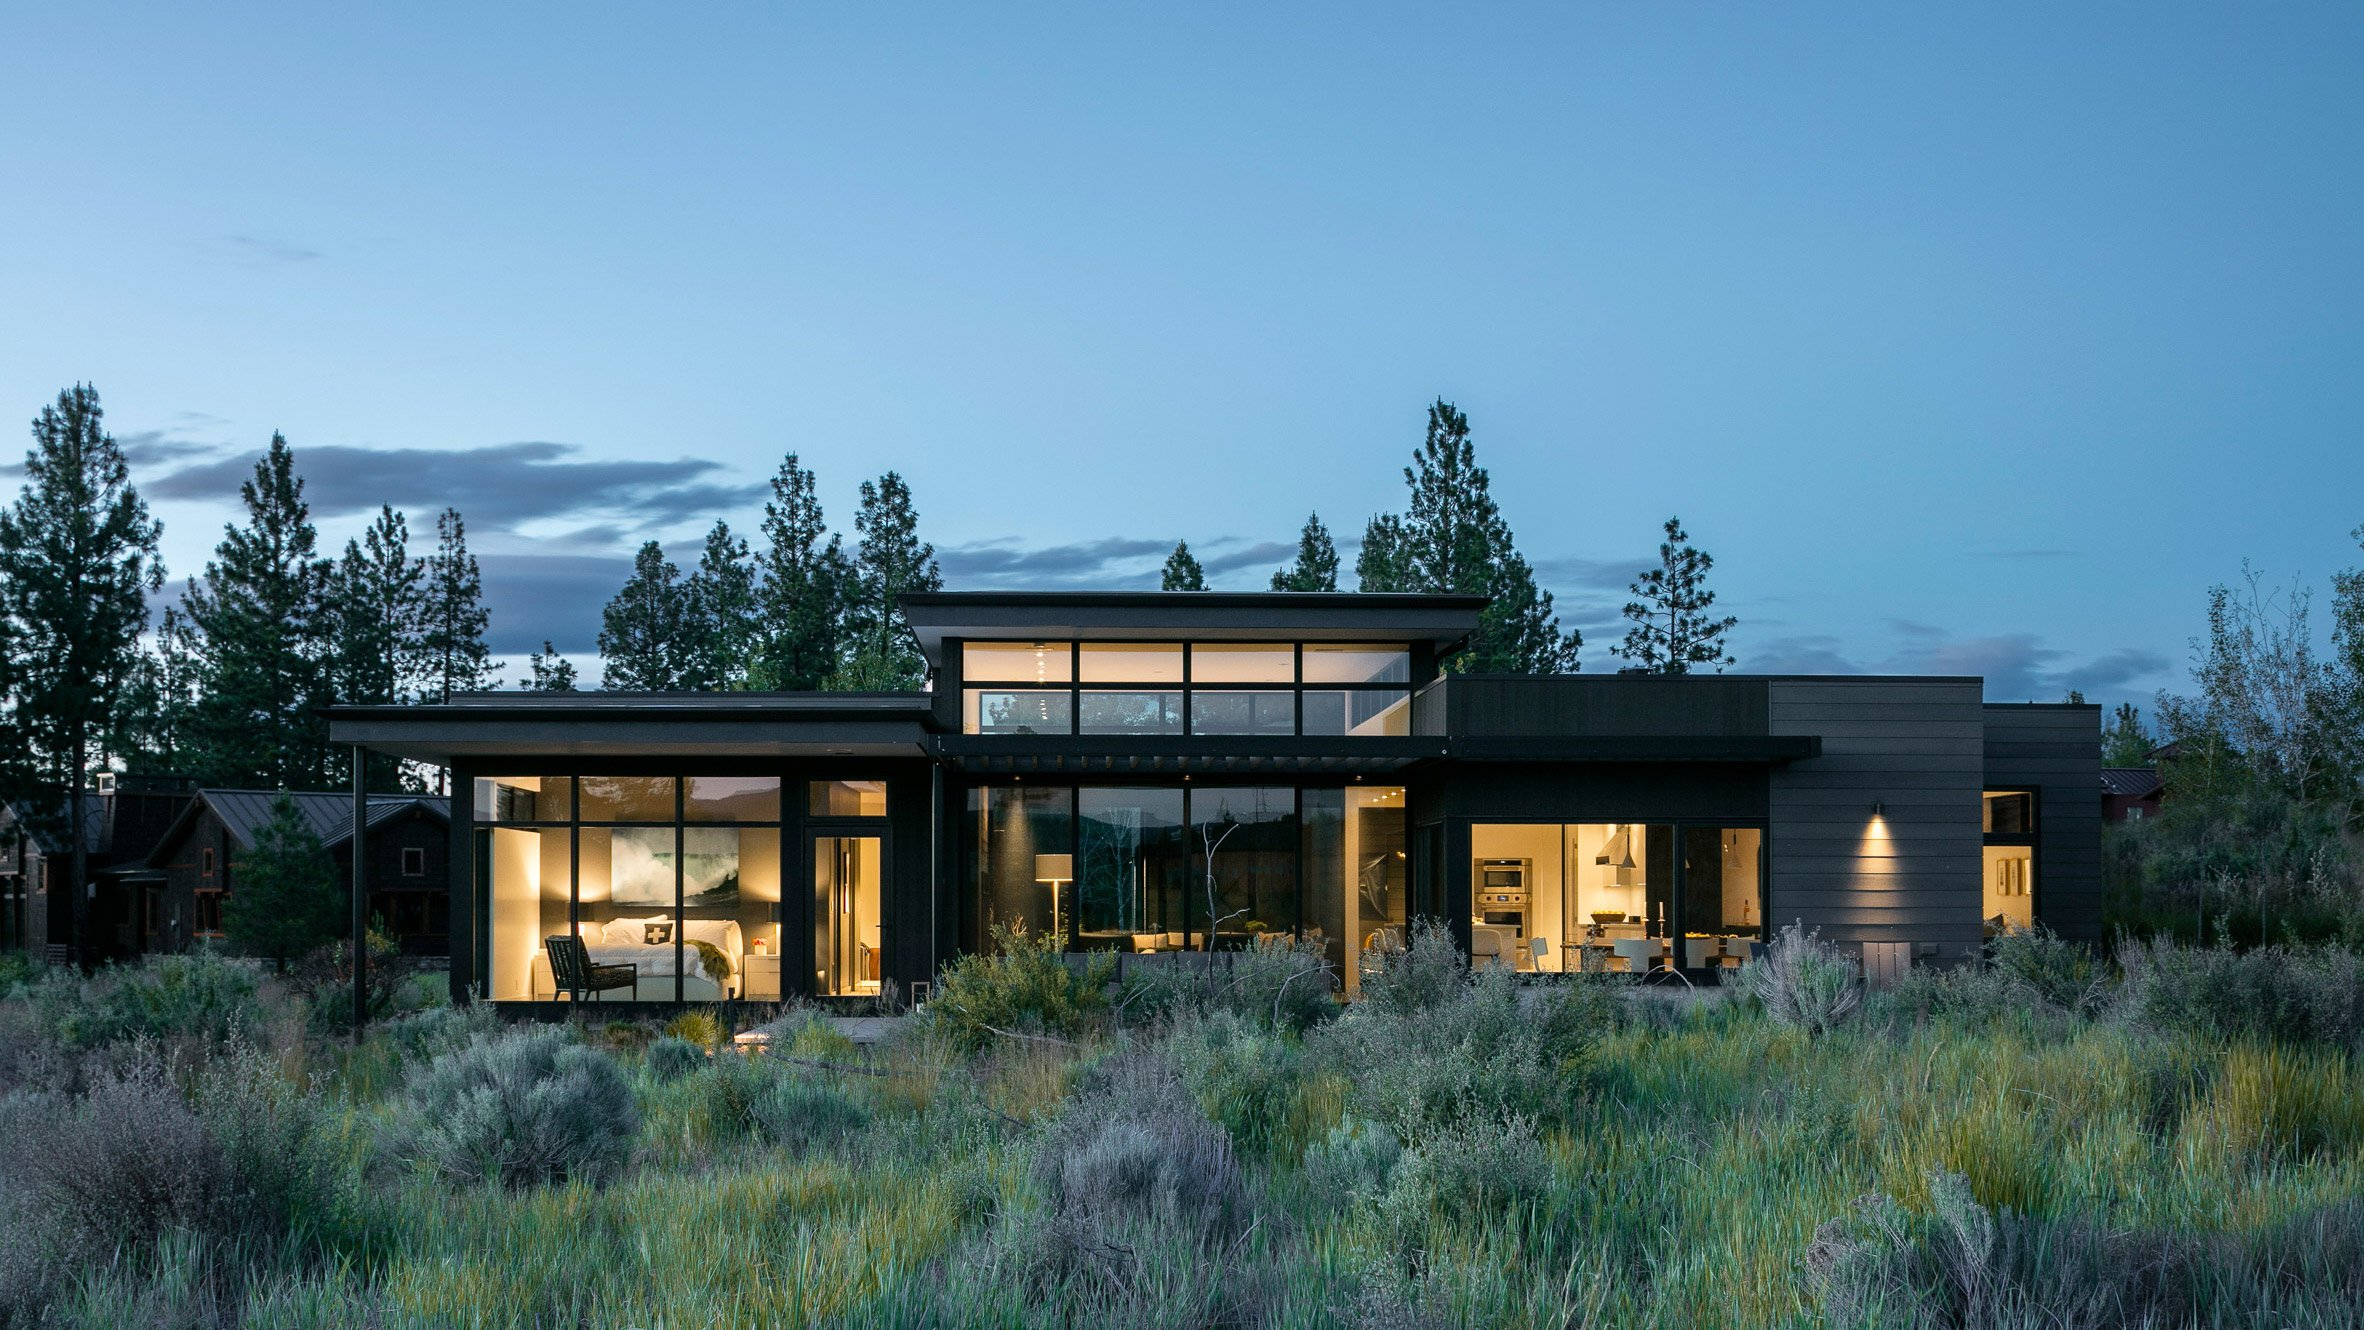 High Desert Modern House Is Designed To Be Cool Calm And